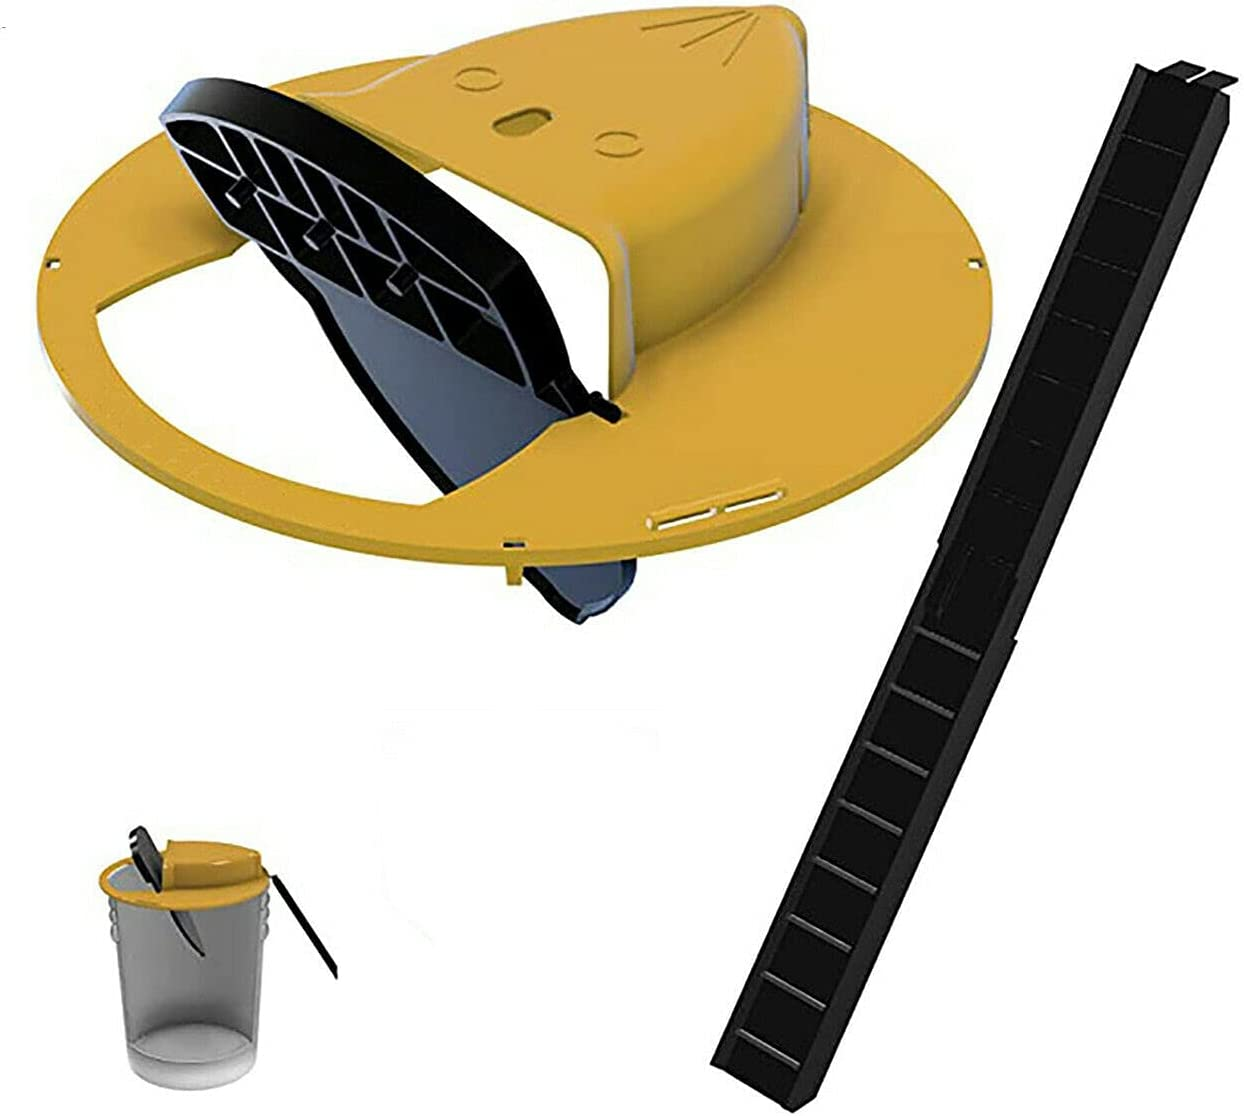 Flip and Slide Bucket Rat Mouse Popular brand in the Free shipping on posting reviews world Lid Trap